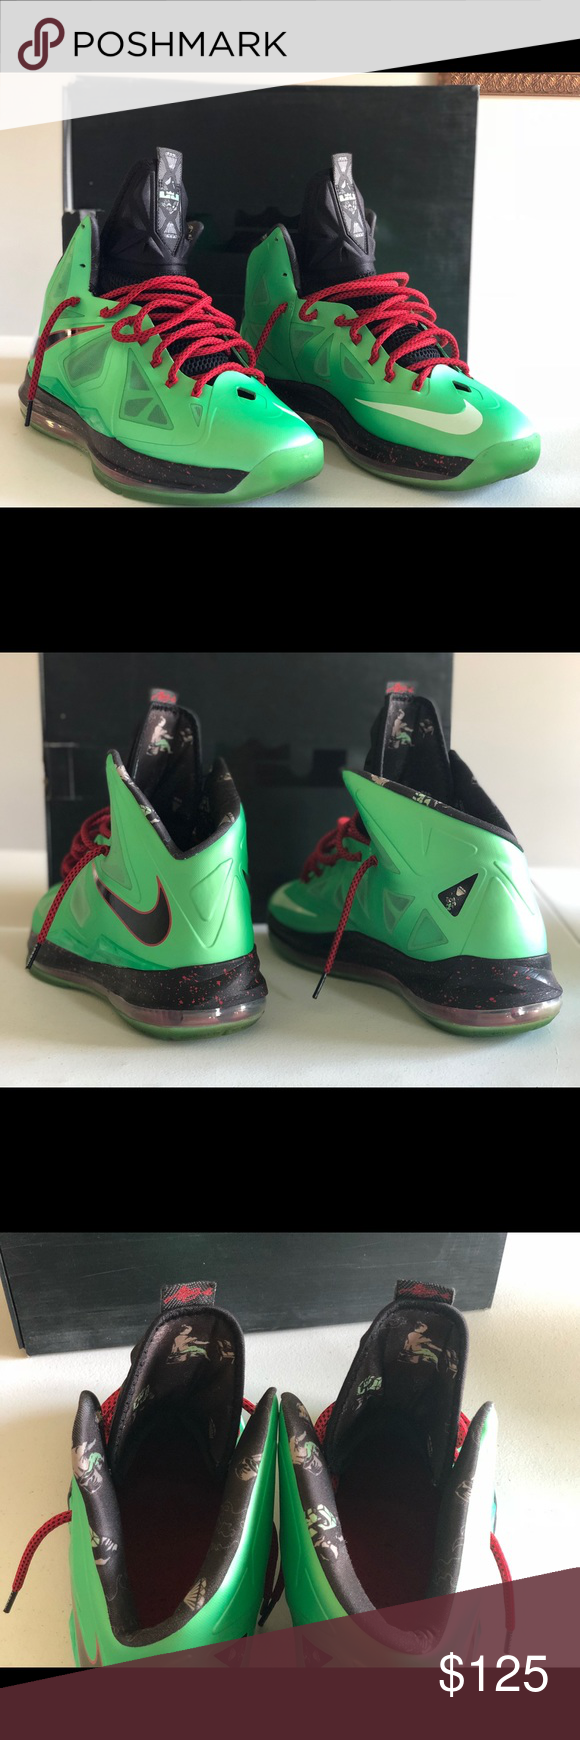 quality design 3b256 ce443 Lebron X Cutting Jade Size 12.5 Nike Lebron X Cutting Jade size 12.5, but  fits like a 13. Almost deadstock. 9 10. Worn twice. All Life left.